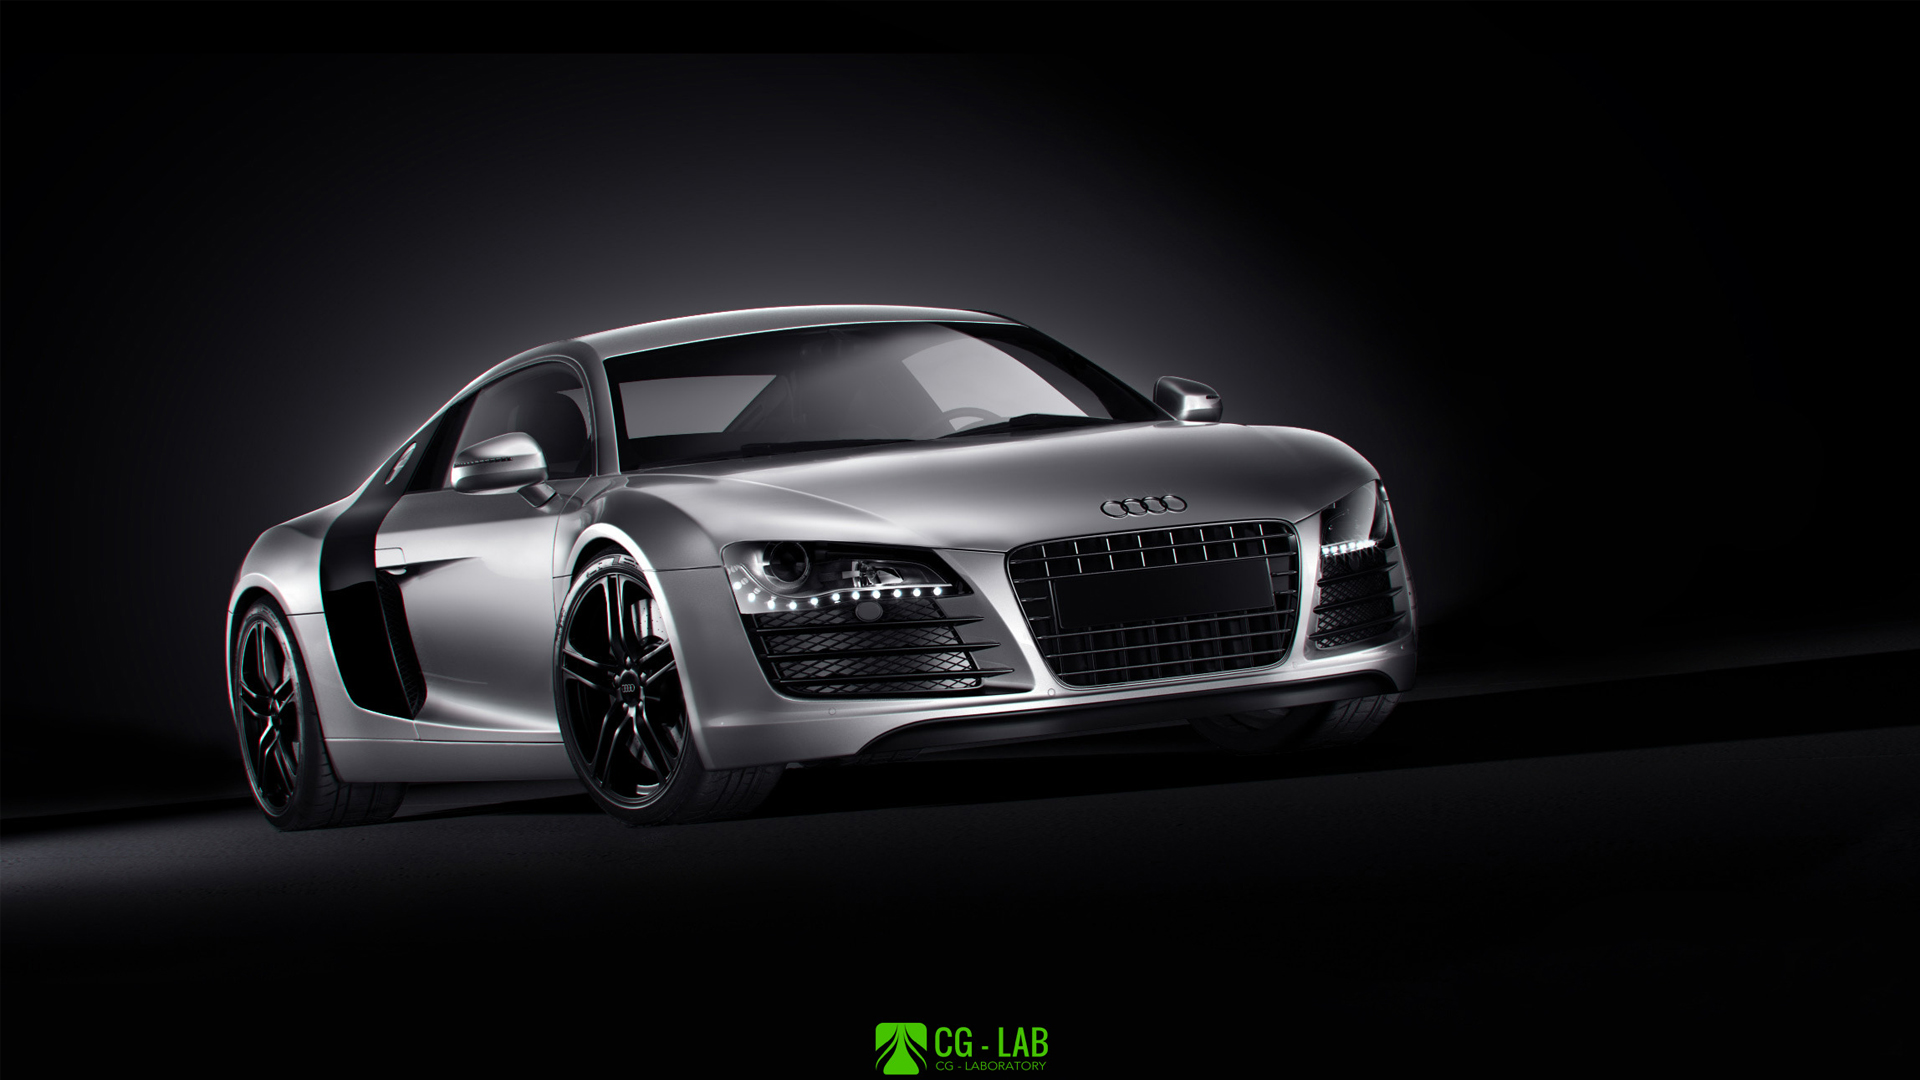 Audi R8 By Salimljabli On Deviantart